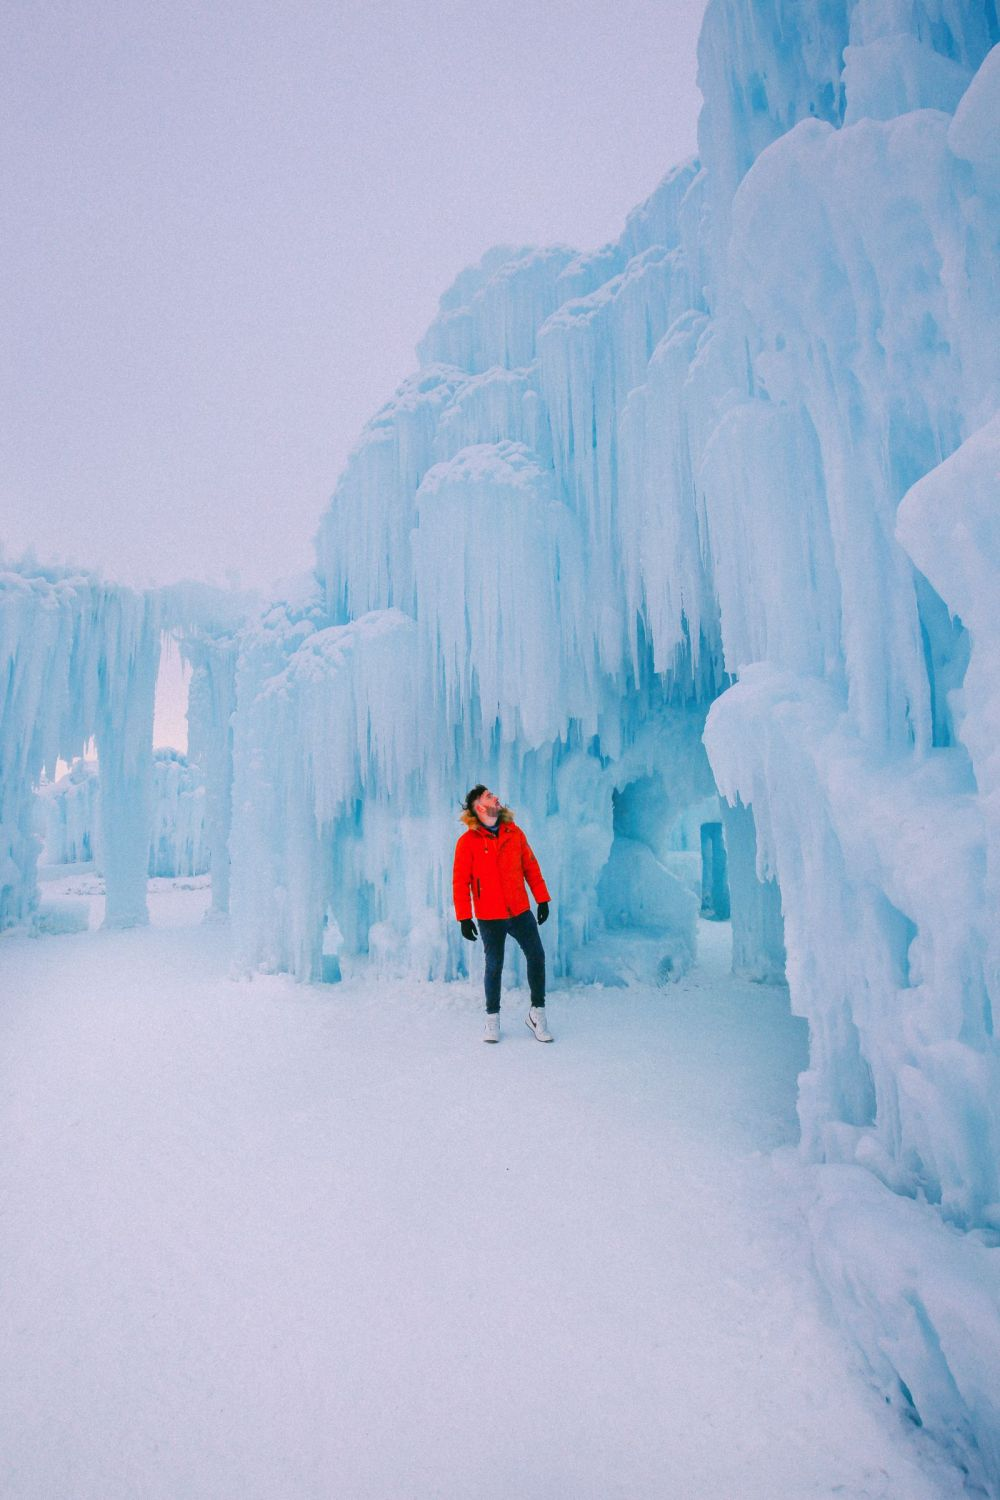 Fat Biking Across The Frozen River Valley To The Ice Castles Of Edmonton, Canada (31)